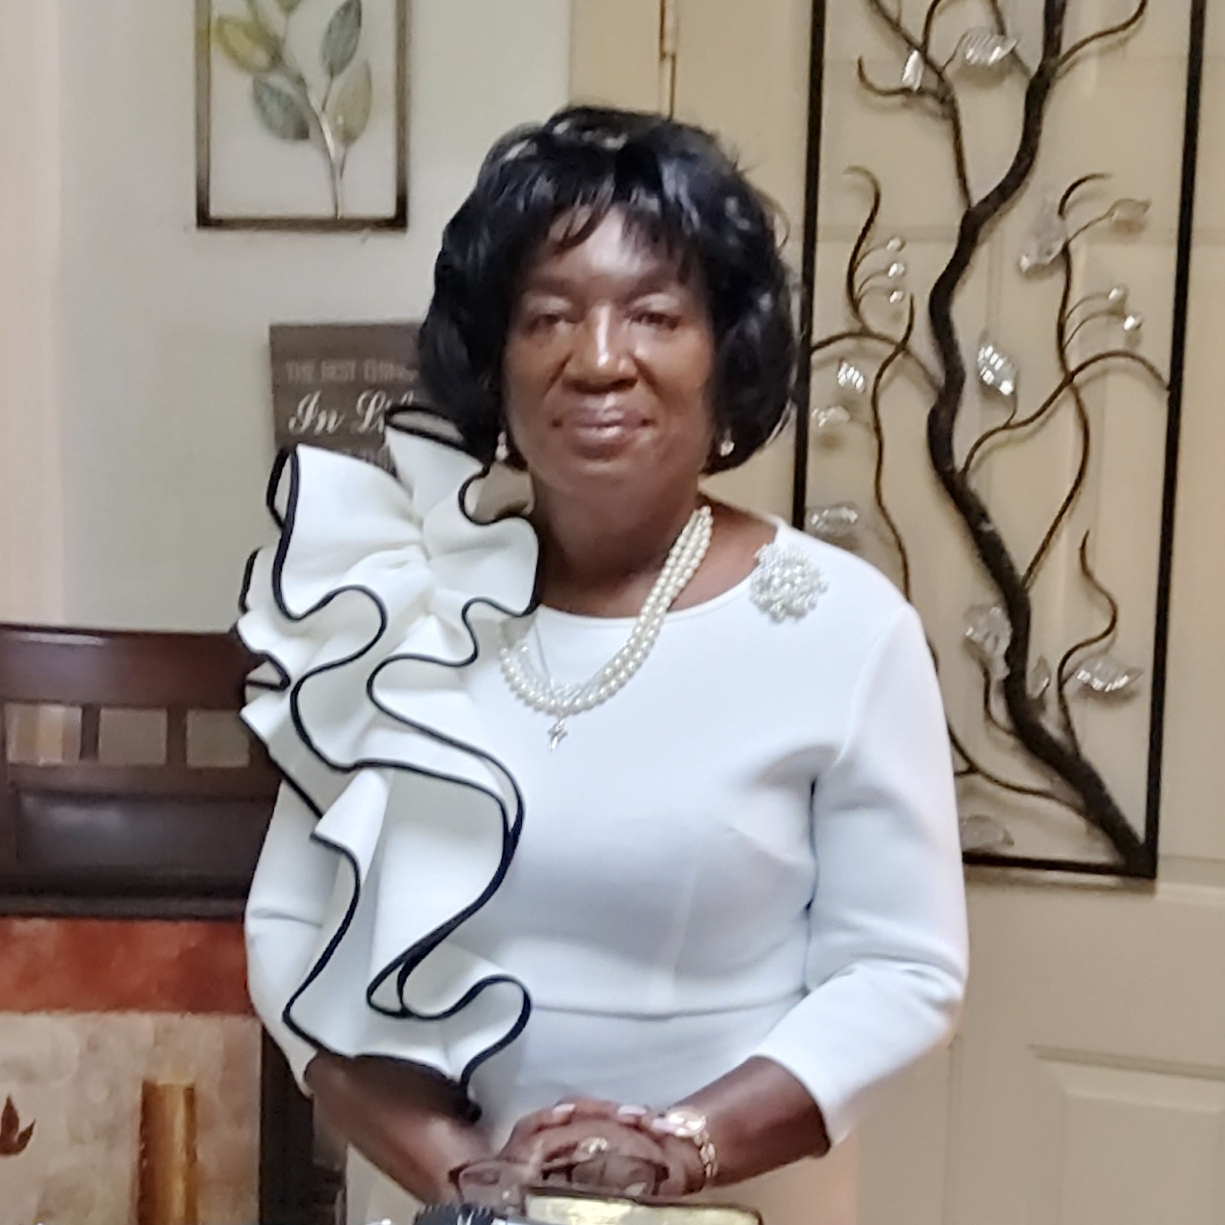 Wilma J. Brown-Foreman, Education Specialist, Ed.S. Honored as a Woman of the Month for June 2020 by P.O.W.E.R.